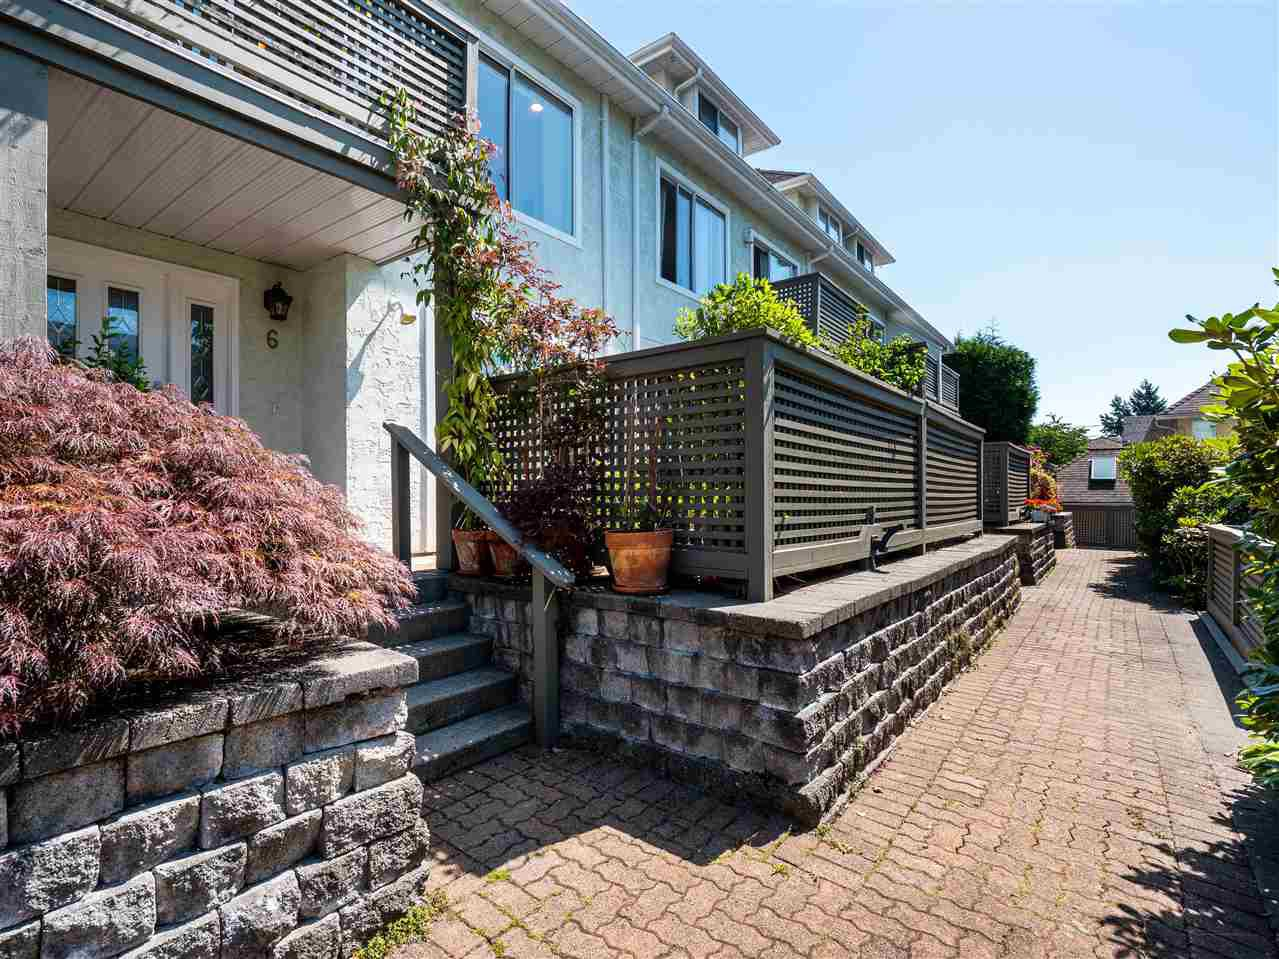 Main Photo: 6 232 E 6TH Street in North Vancouver: Lower Lonsdale Townhouse for sale : MLS®# R2393967